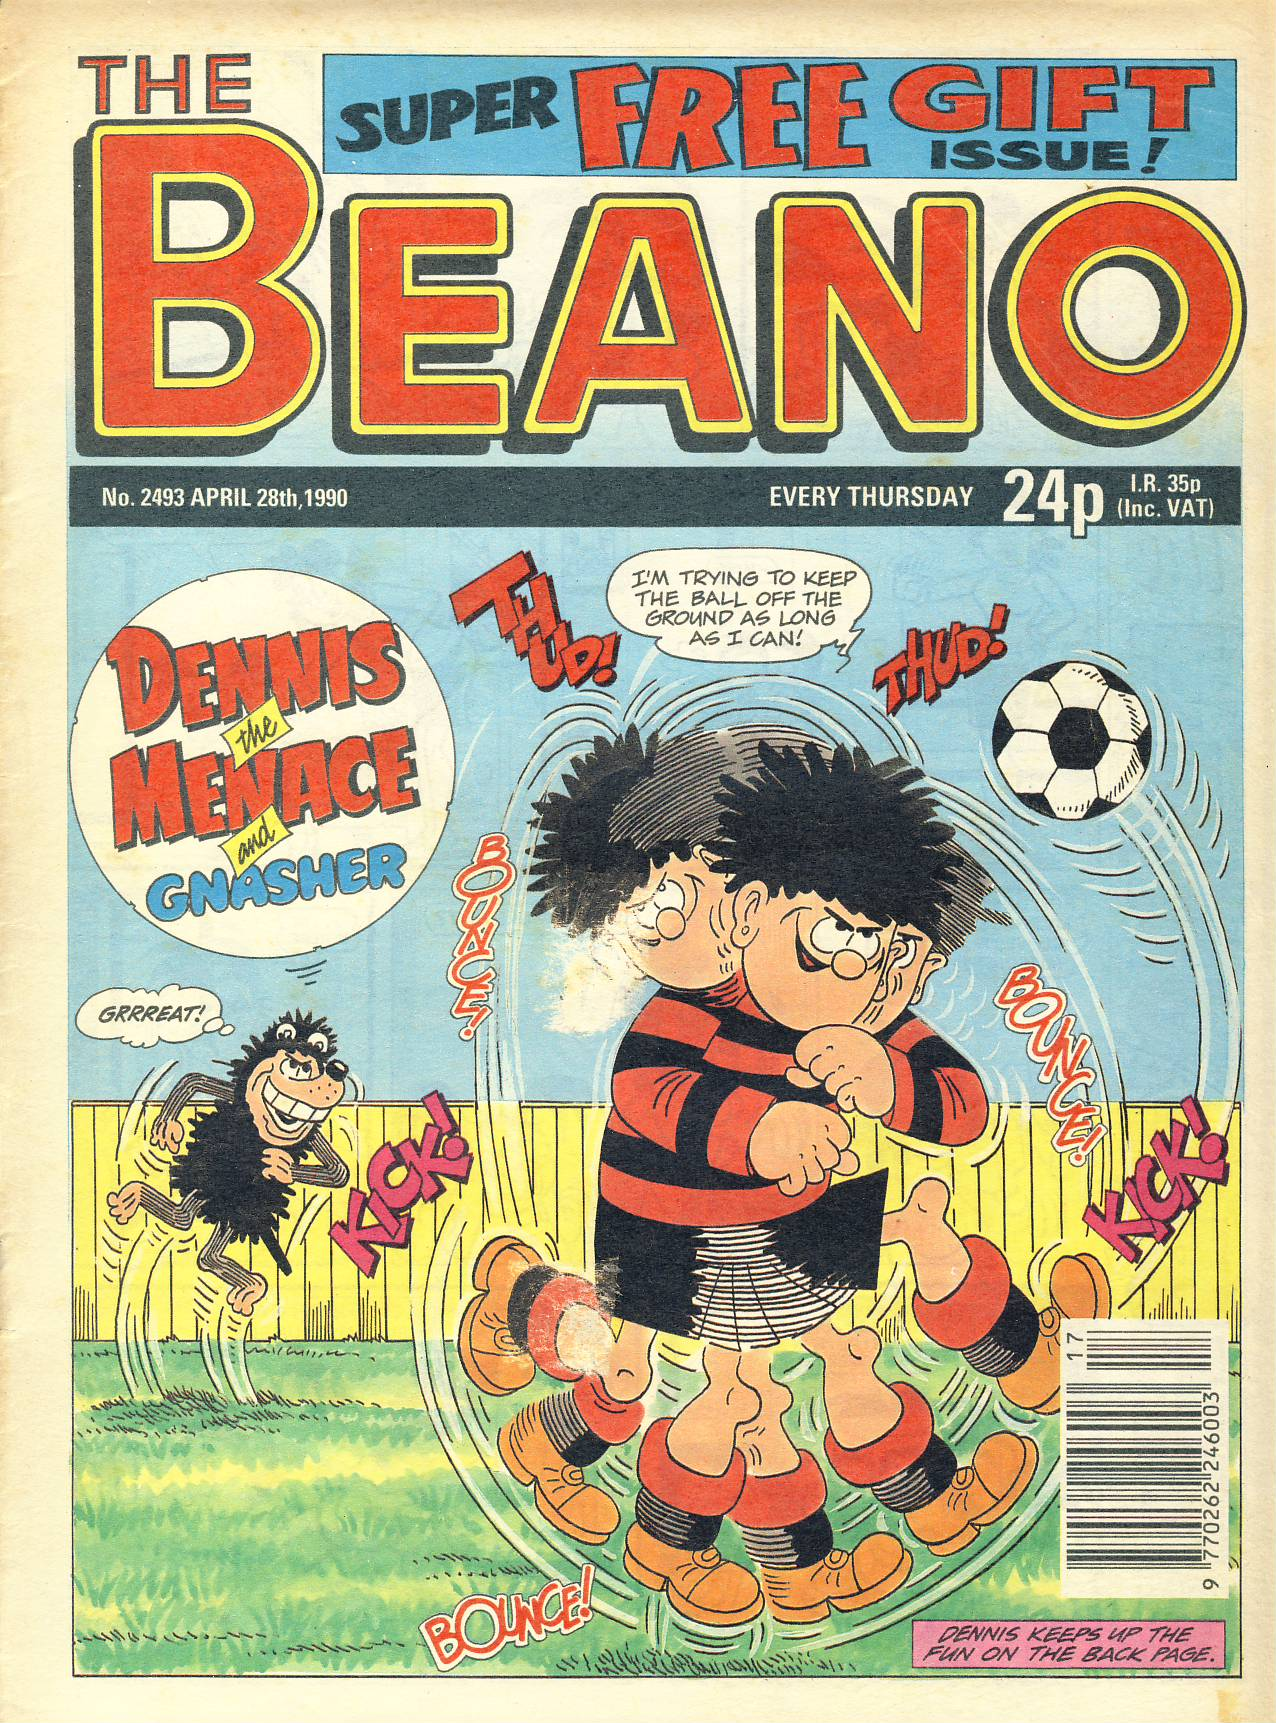 1990 April 28th BEANO vintage comic Good Gift Christmas Present Birthday Anniversary ref300a pre-owned item in good read condition.